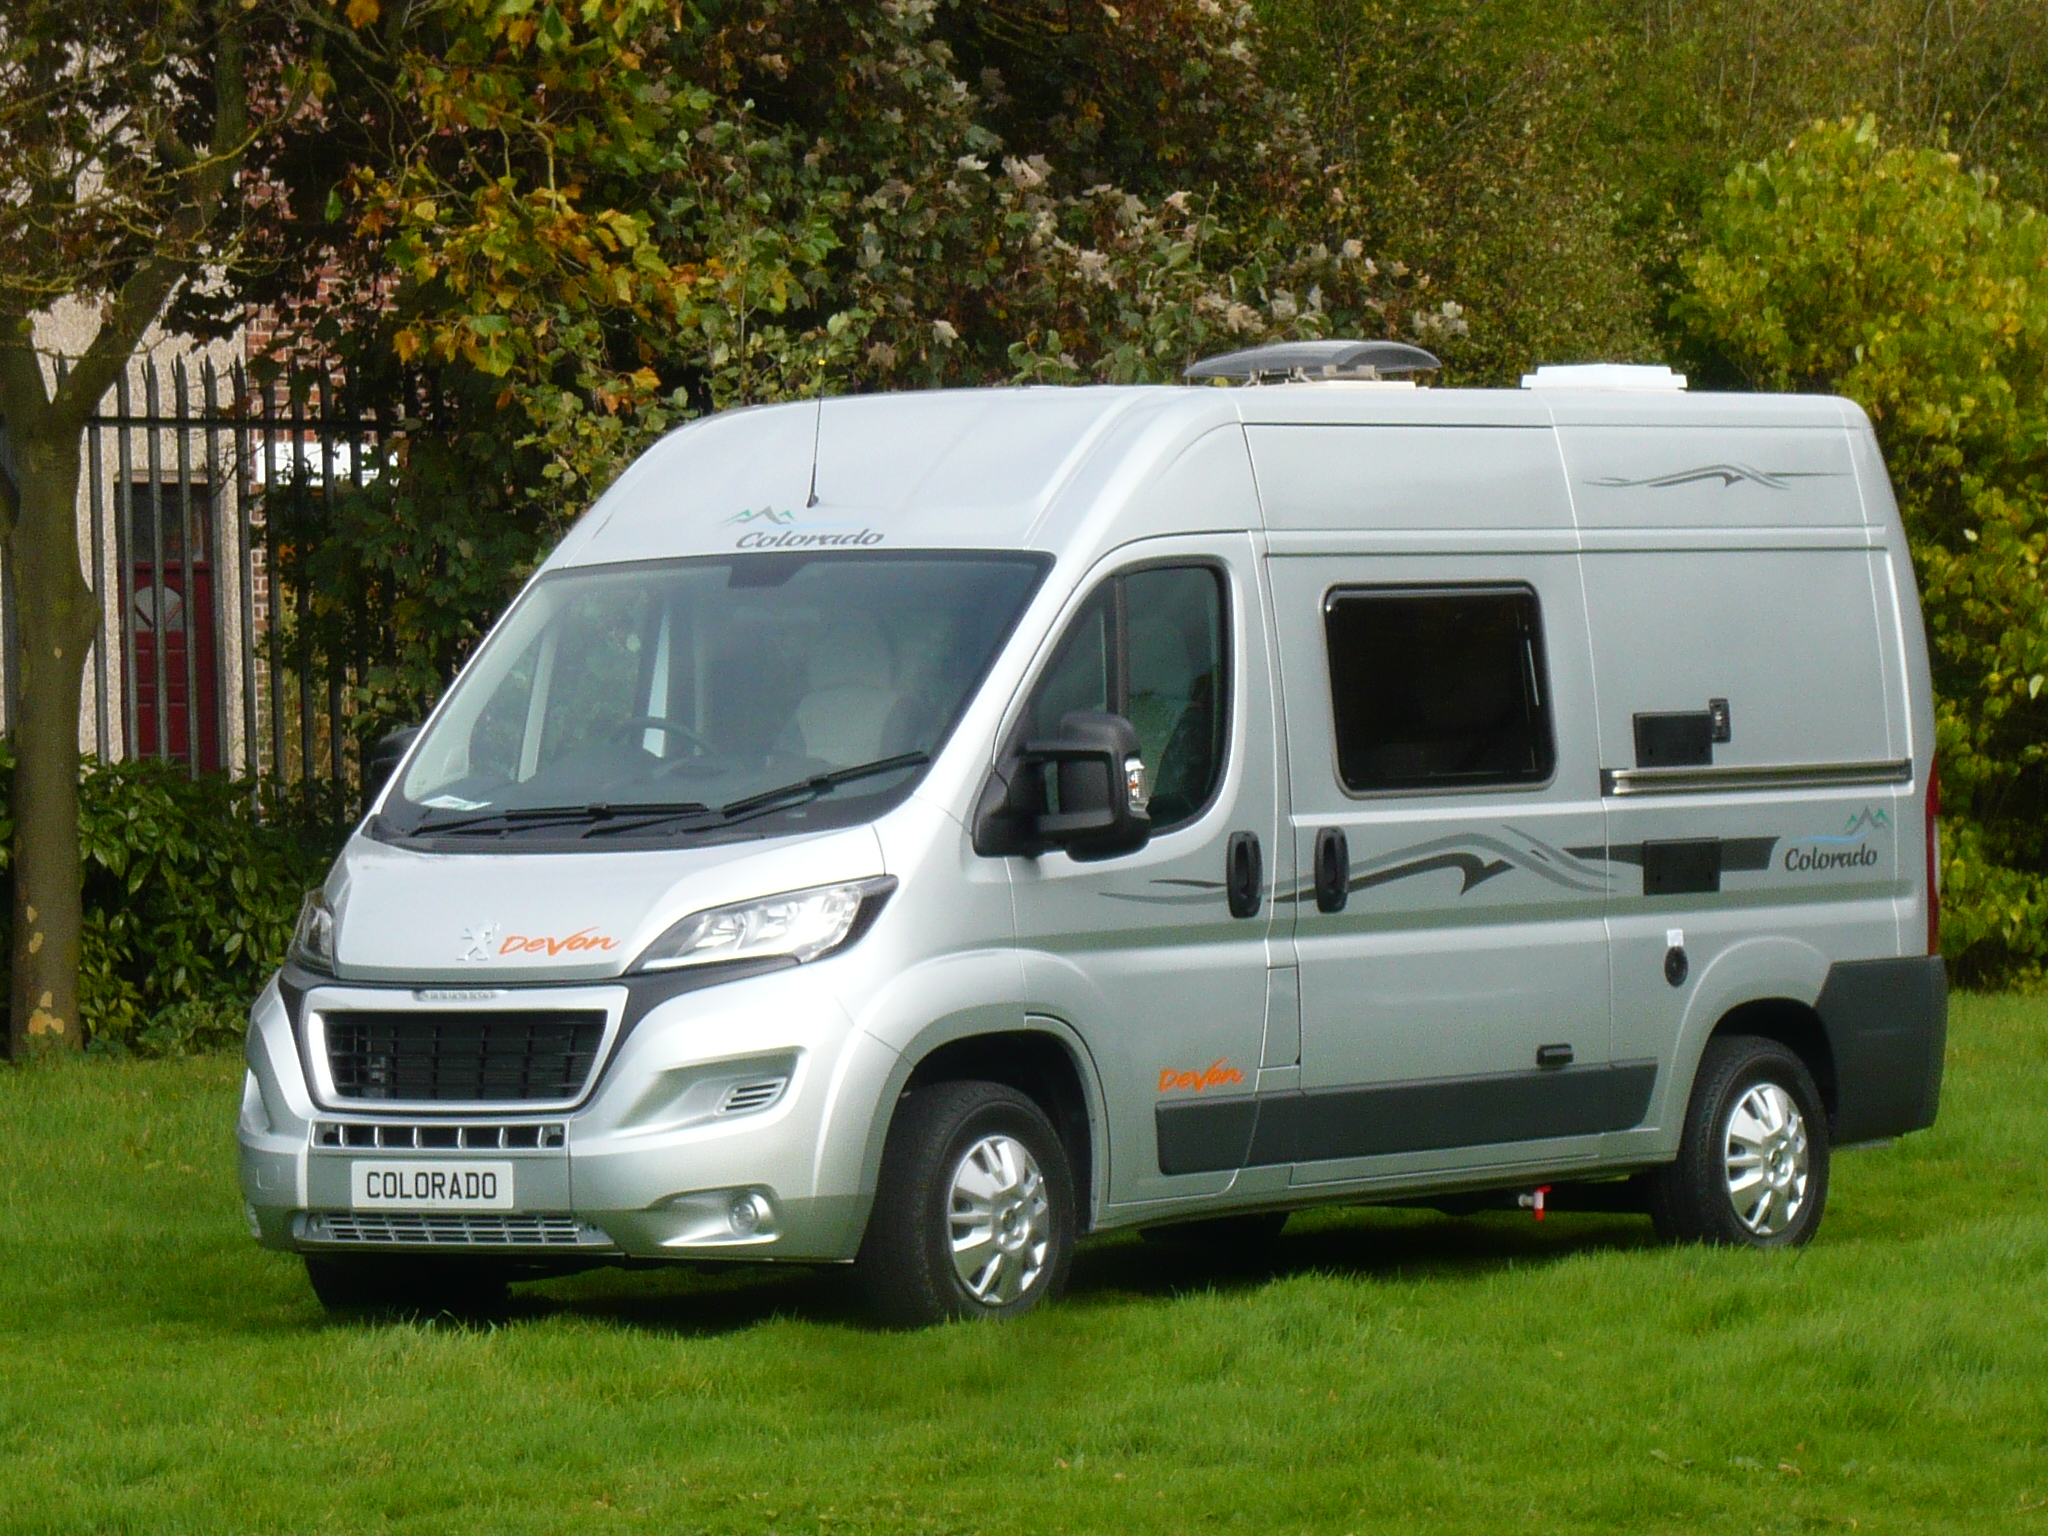 Devon Colorado Twin - 2 berth 4 belted seats